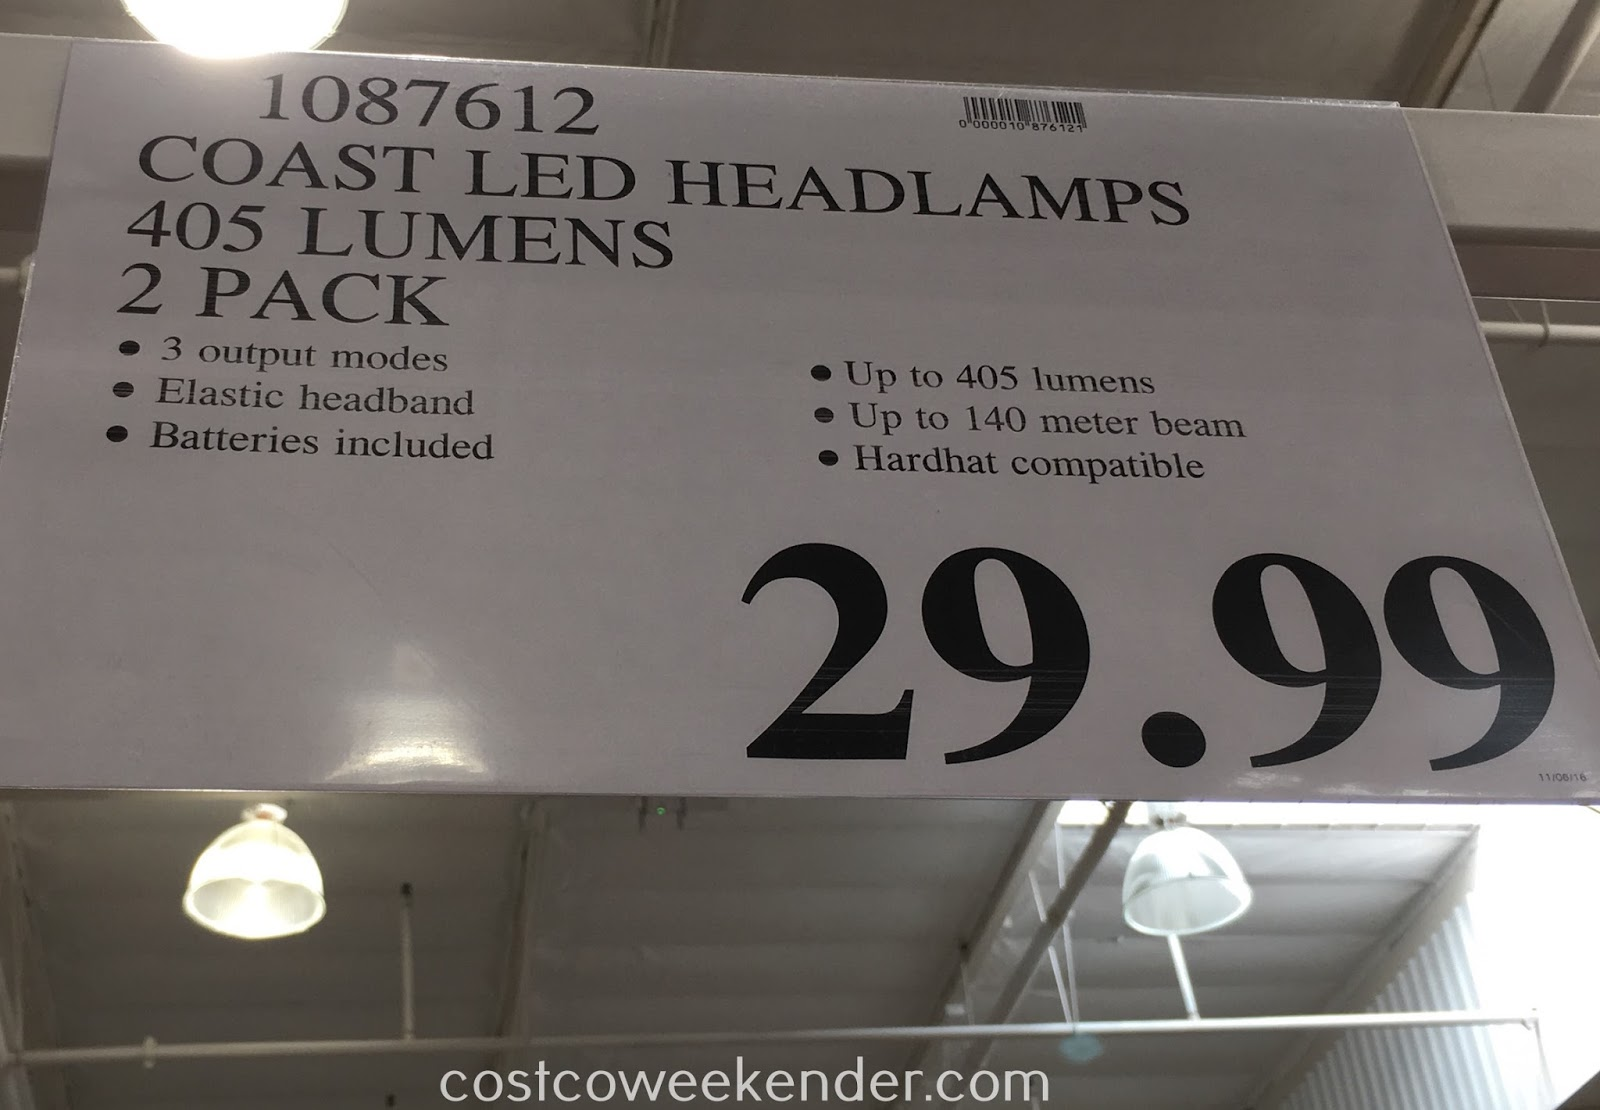 Deal for the Coast Dual Color Focusing LED Headlamp 2 pack at Costco